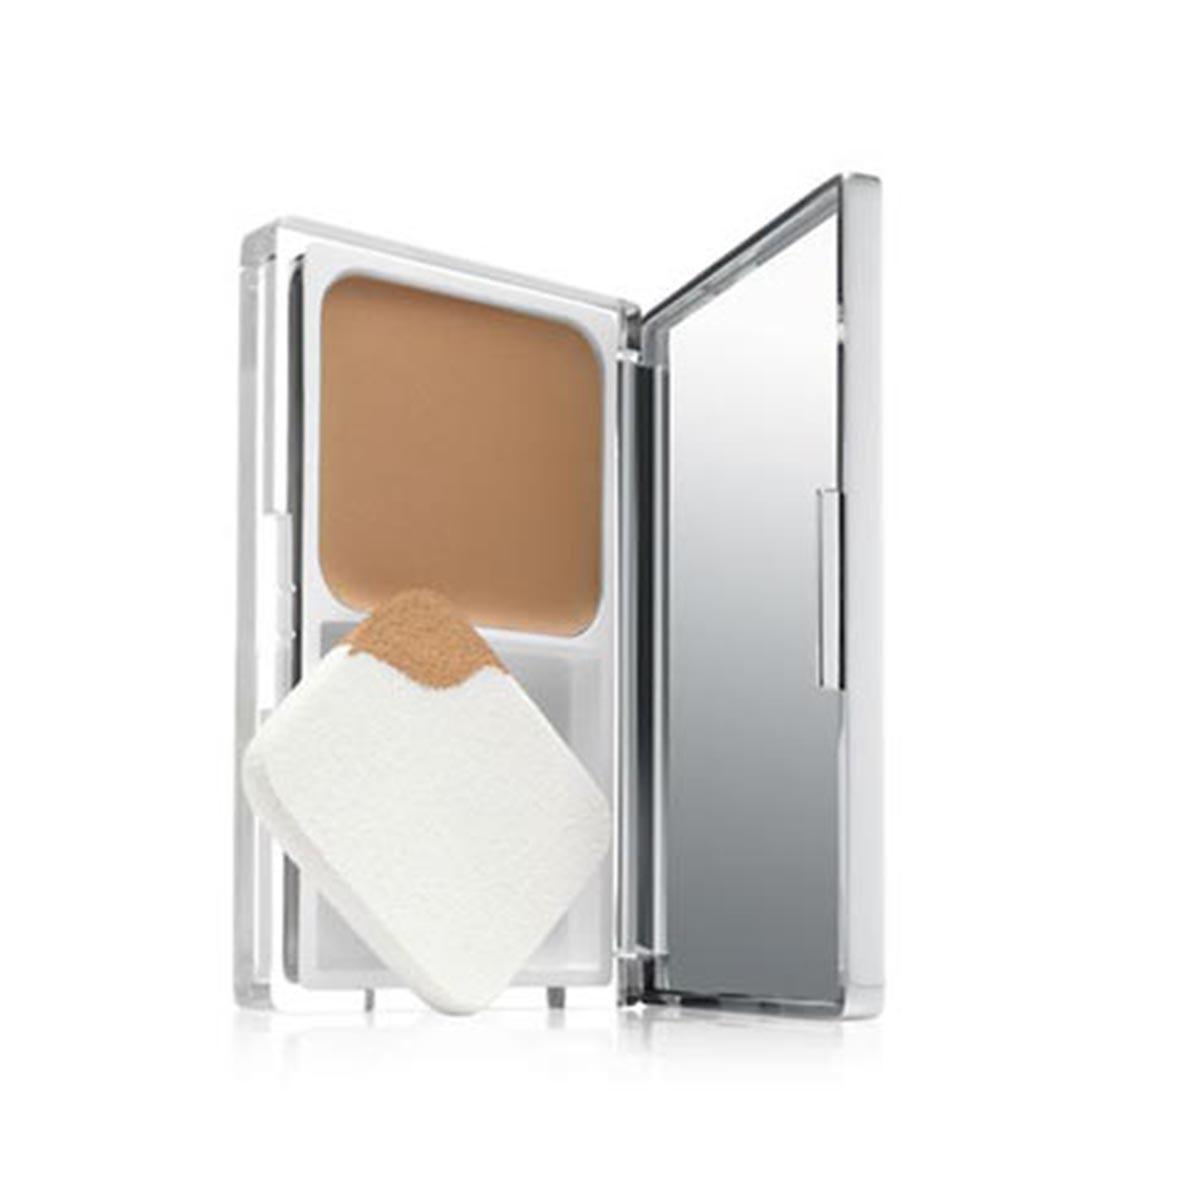 Clinique Acne Solutions Powder Makeup 05